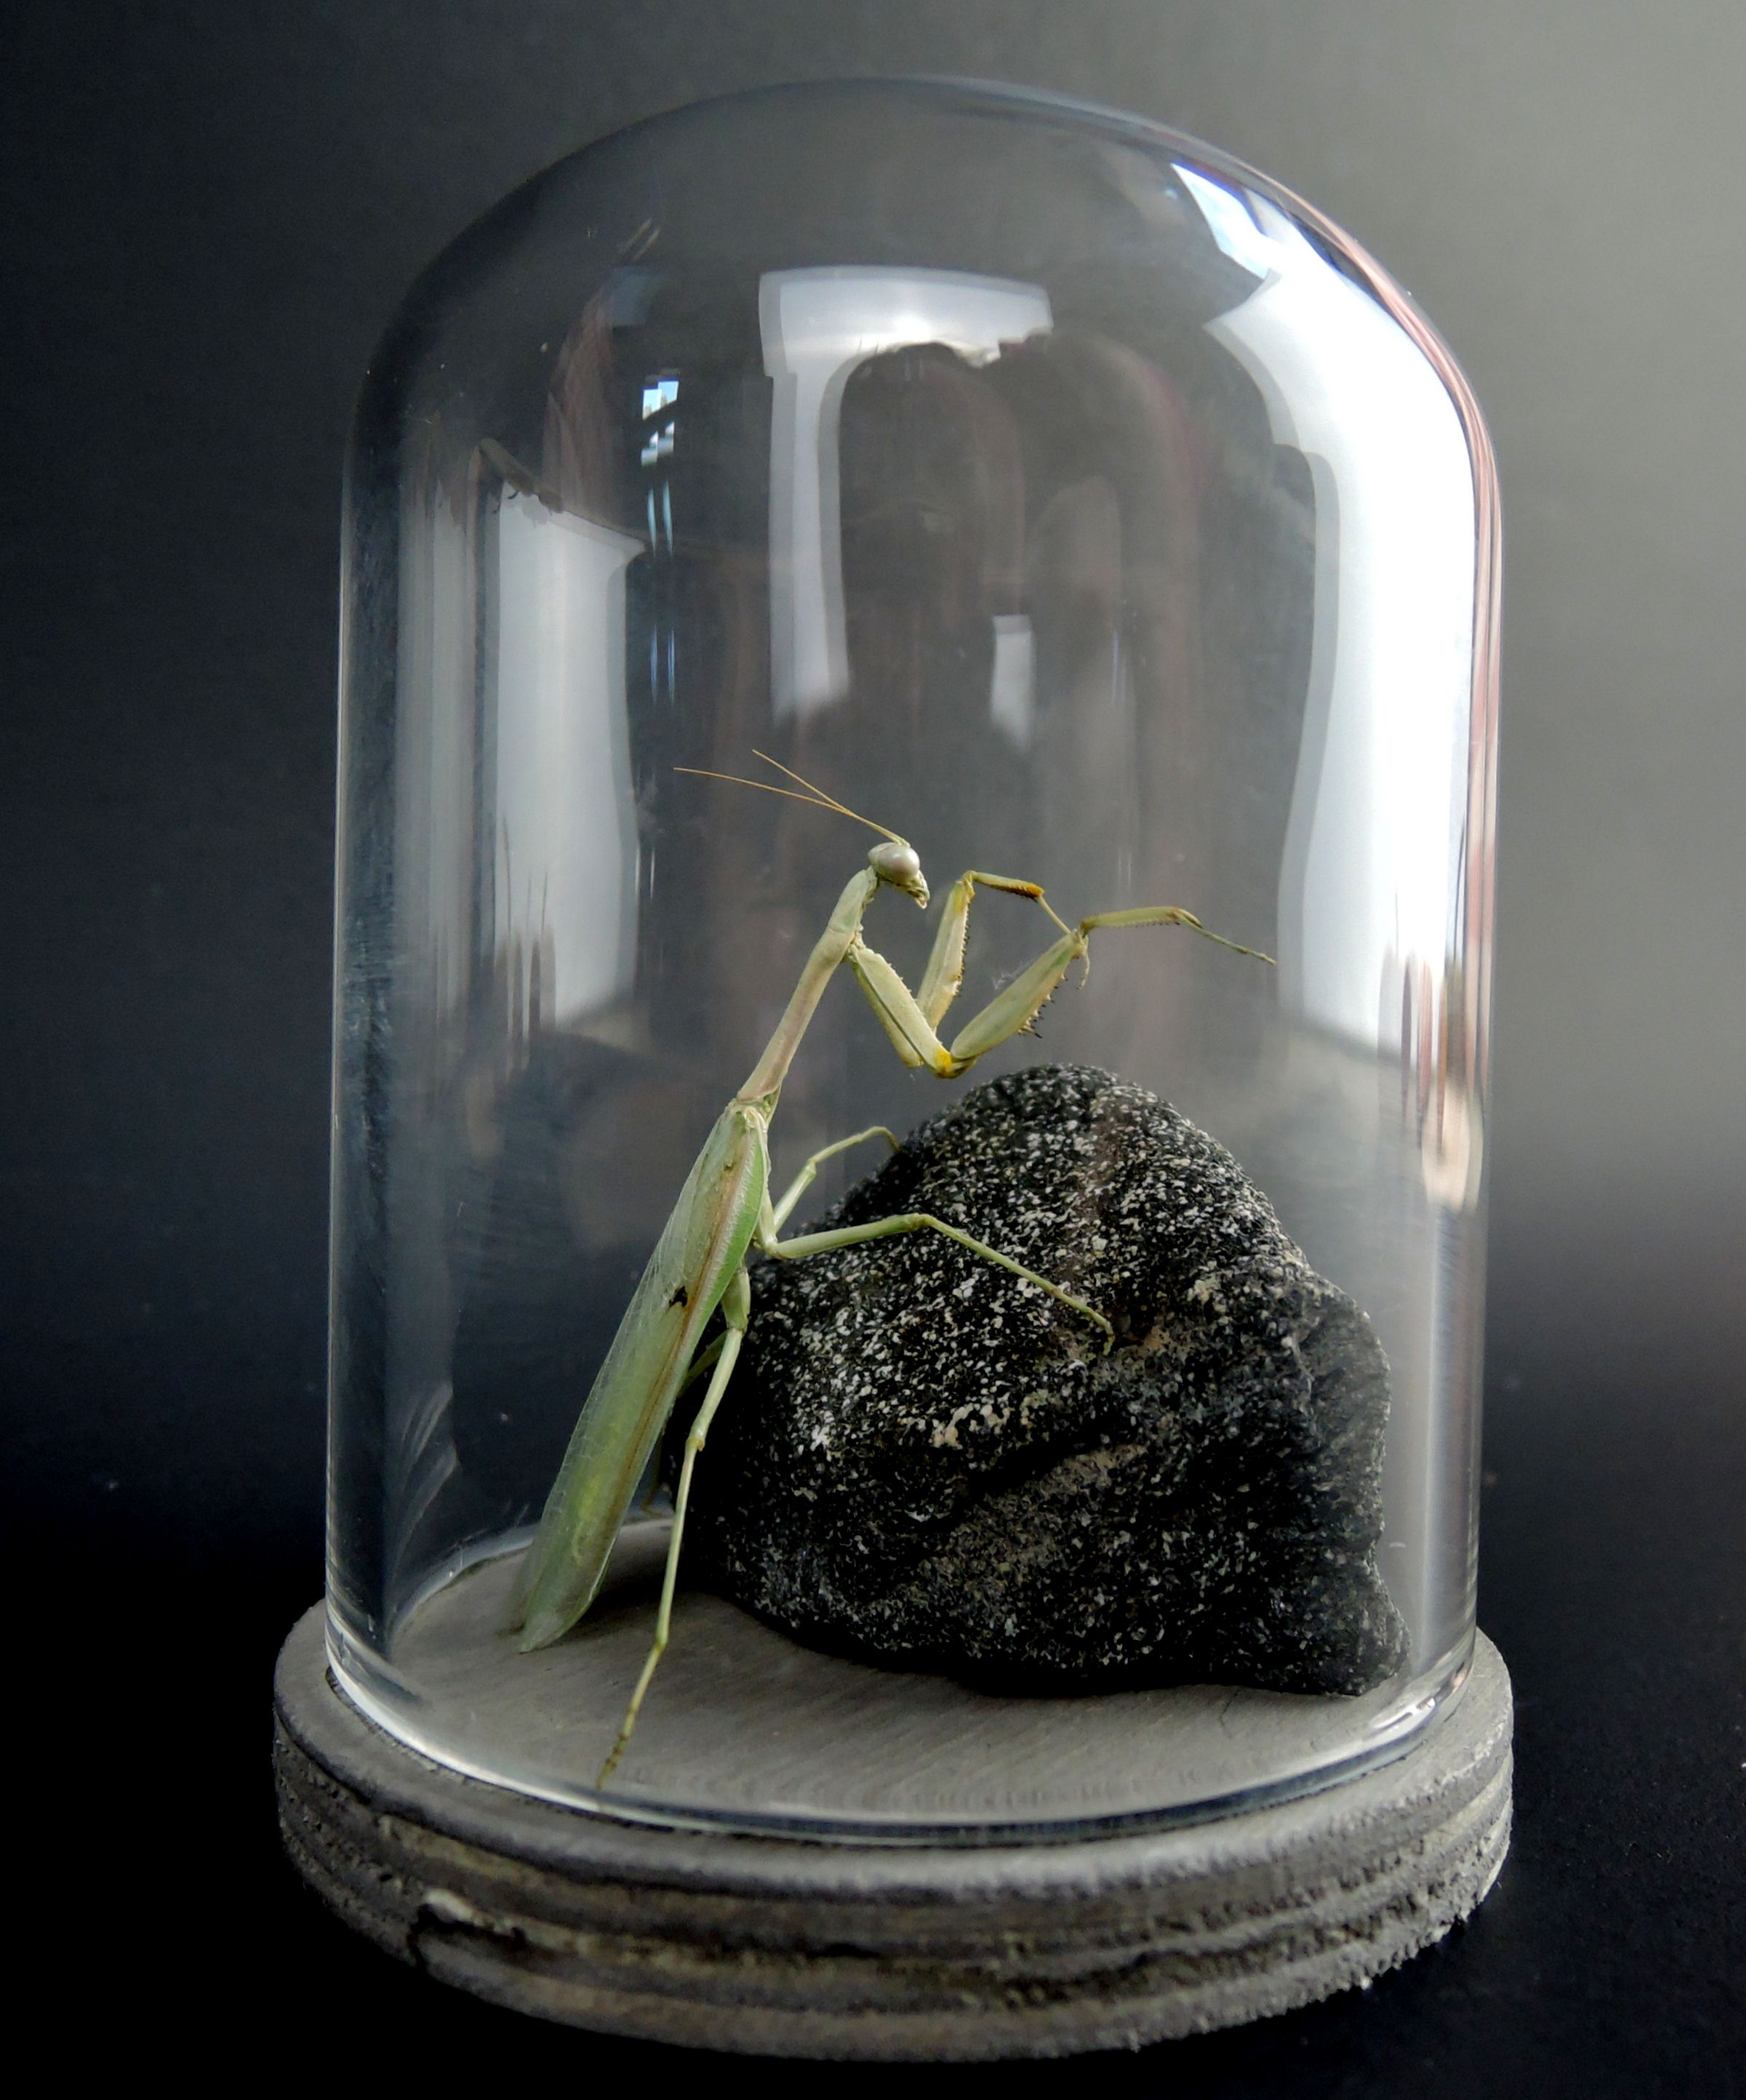 Curiosities And Oddities By Mini Masterpieces Az Praying Mantis Taxidermy Under Glass Dome Made In Tucson Az Naturalist Decor Orchid Mantis Glass Domes